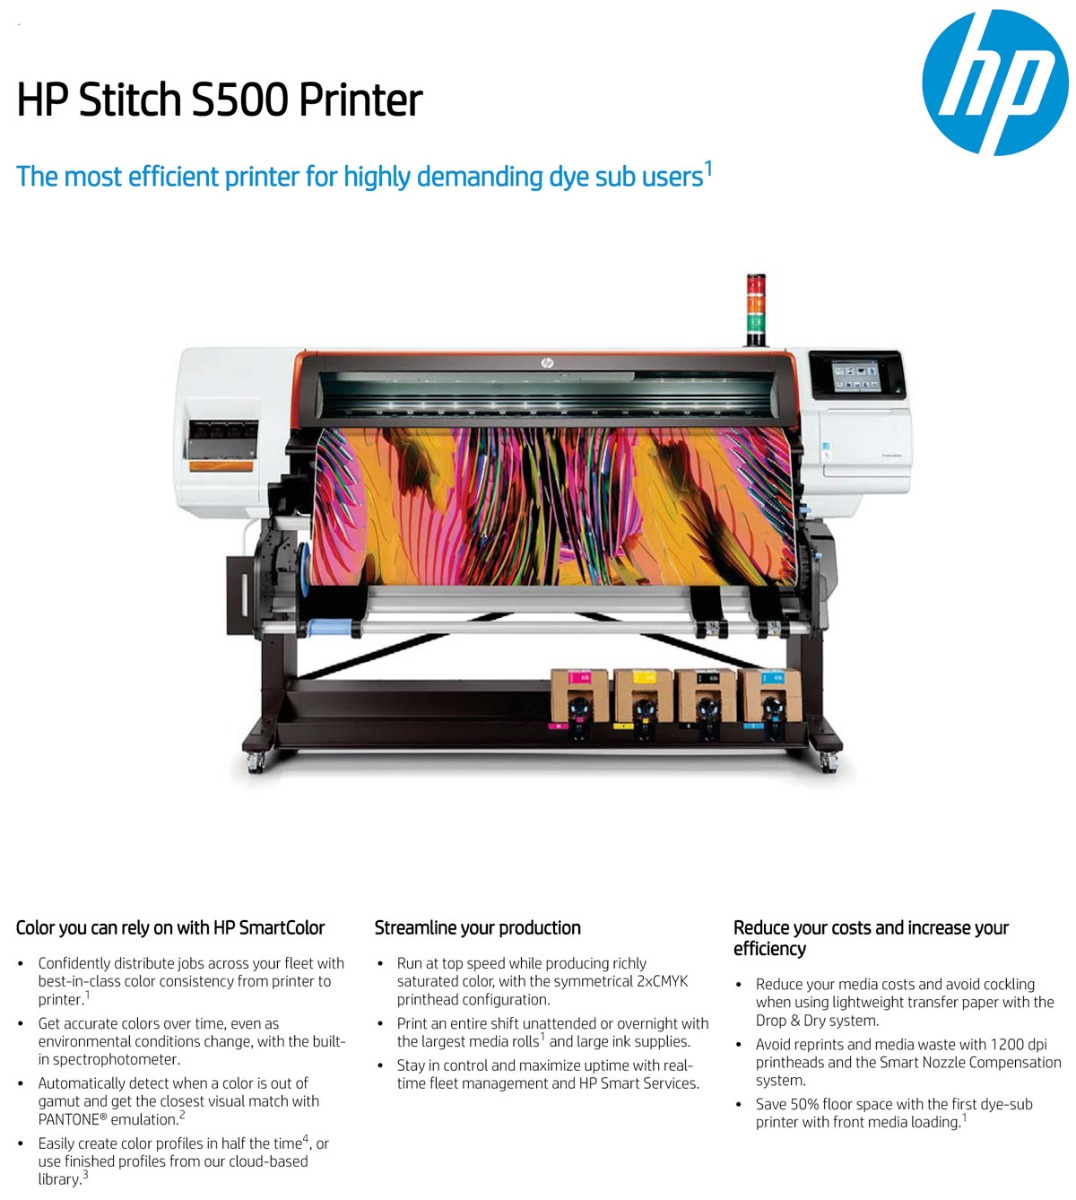 hp stitch s500 printer features including color consistency across printers easy profiling user replaceable printheads auto maintenance and print direct to fabric large ink tanks